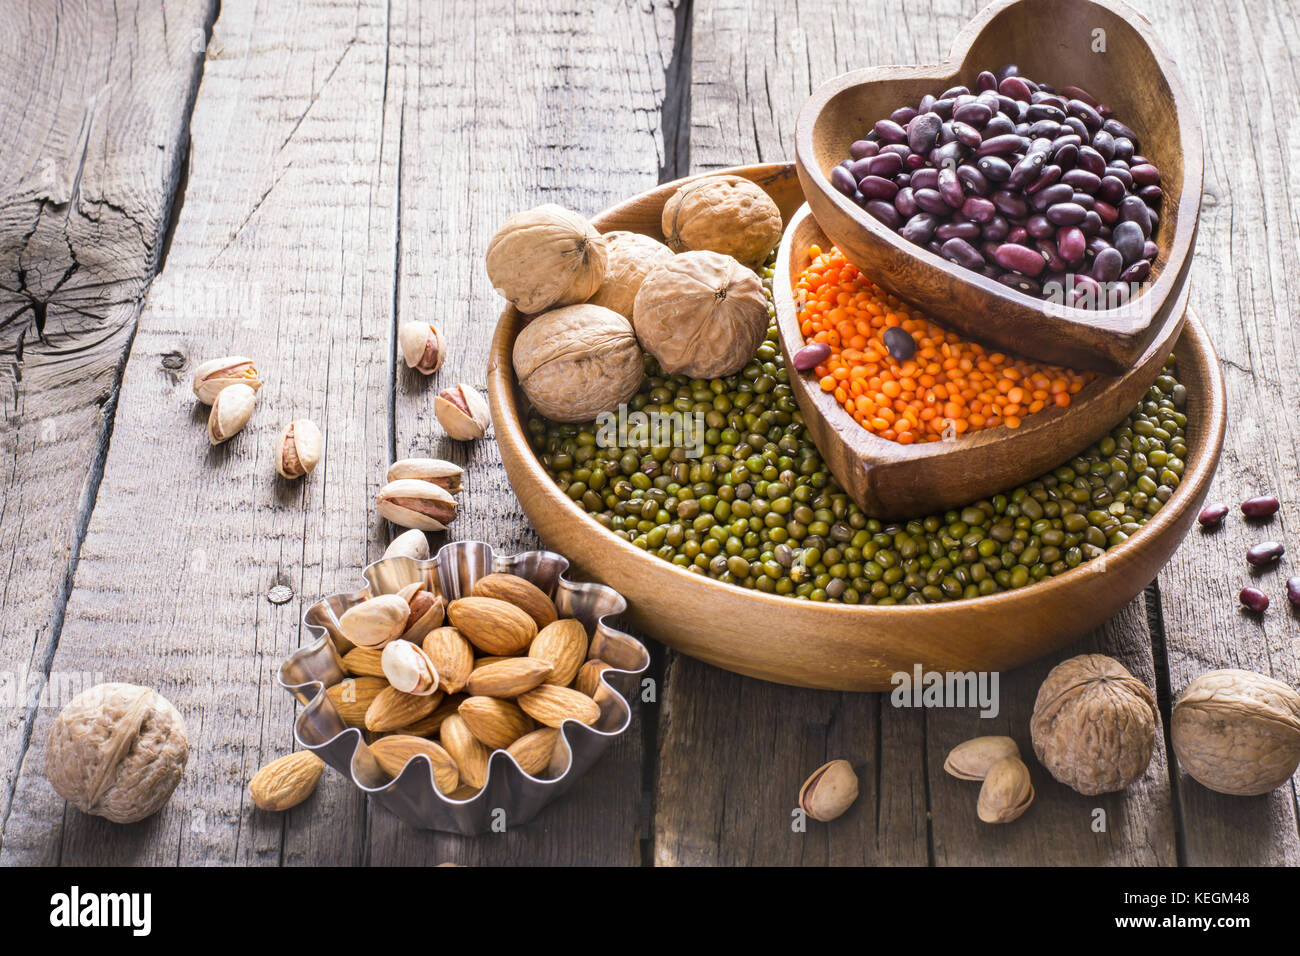 Sources of vegetable protein. collection of various legumes and nuts - Stock Image